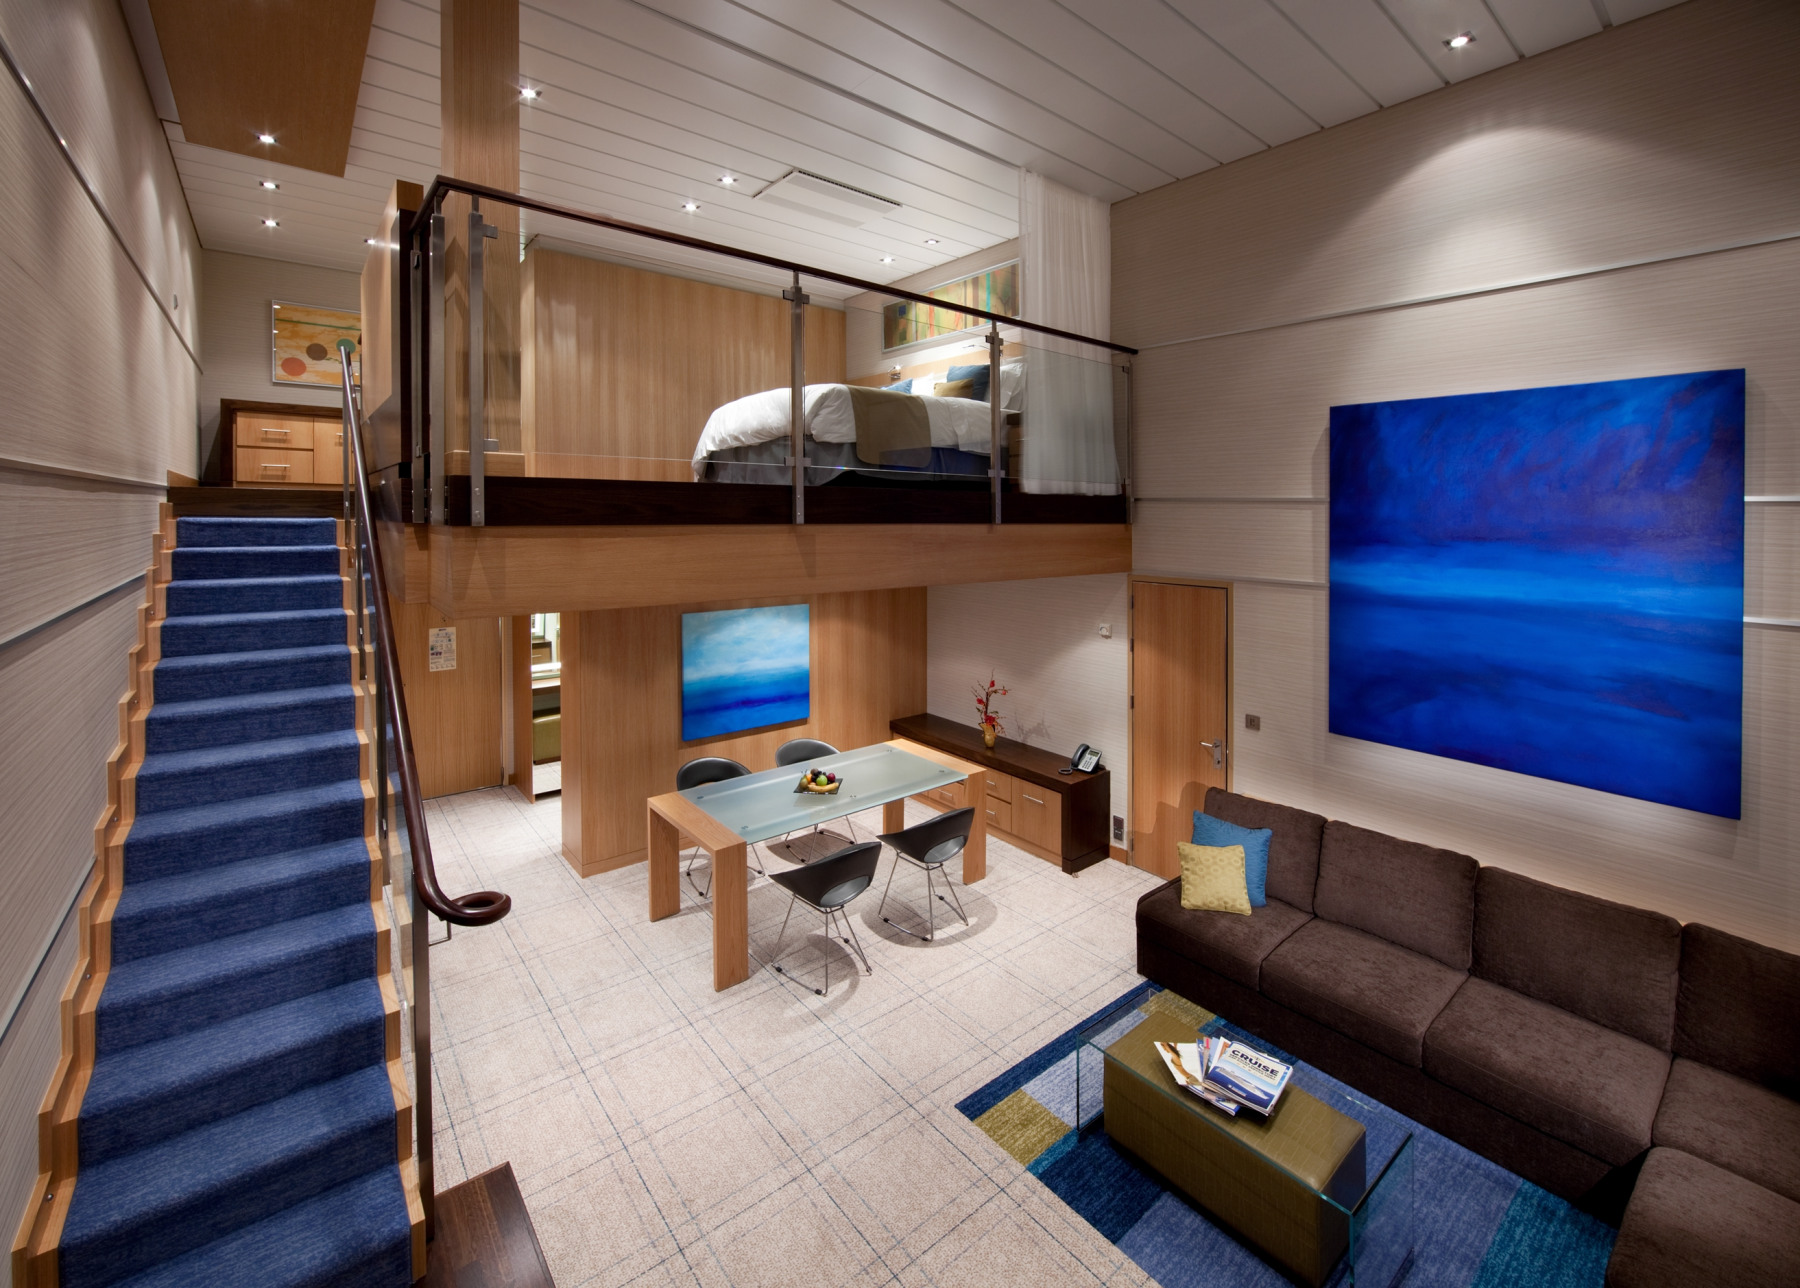 Royal Caribbean International Oasis of the seas accommodation sky loft room.jpg